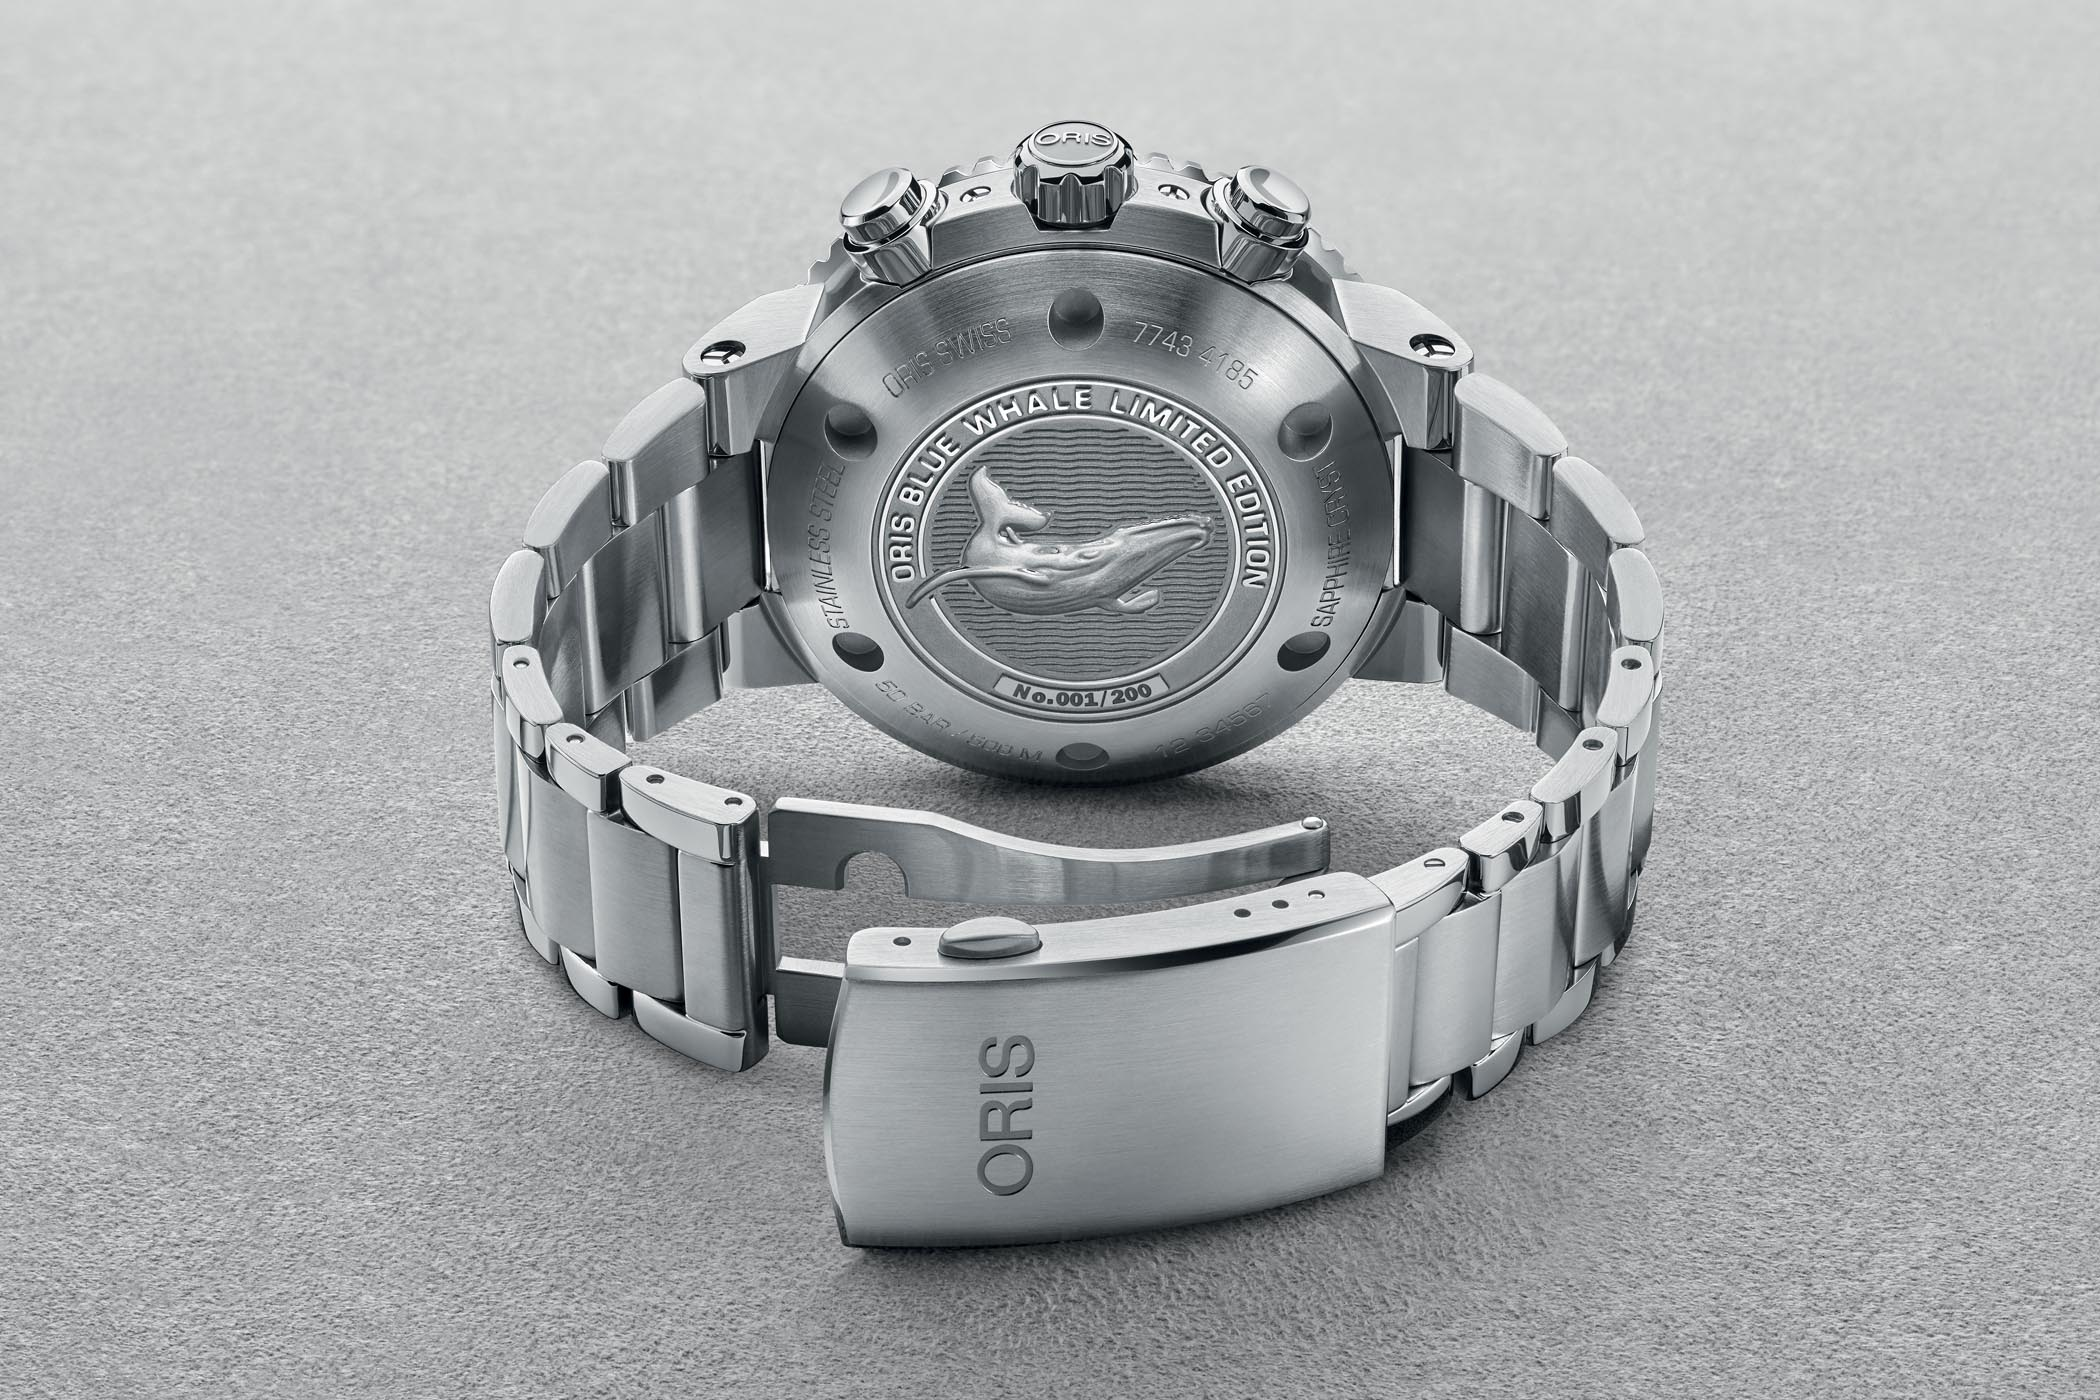 Oris Ocean Trilogy - Oris Blue Whale Limited Edition